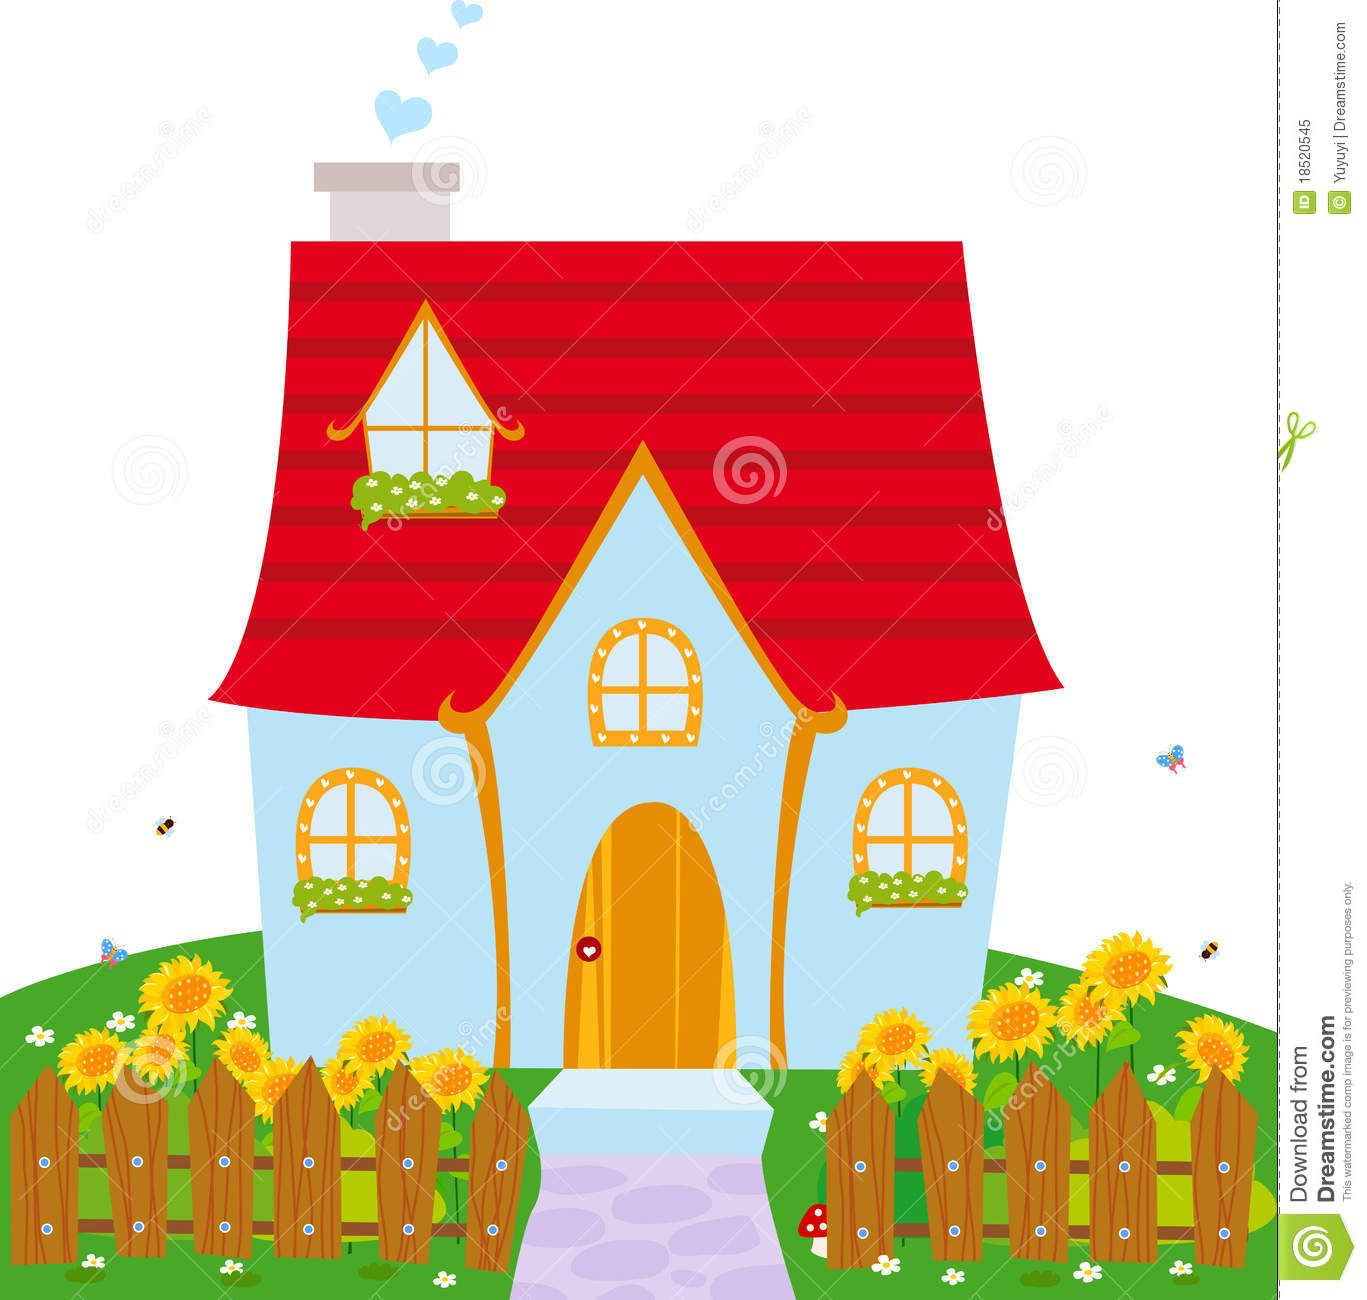 Illustration About Illustration Of A Cute Little House Illustration Of Cartoon Colorful Meadow 18520 Cute House Cute Little Houses Free Stock Photos Image